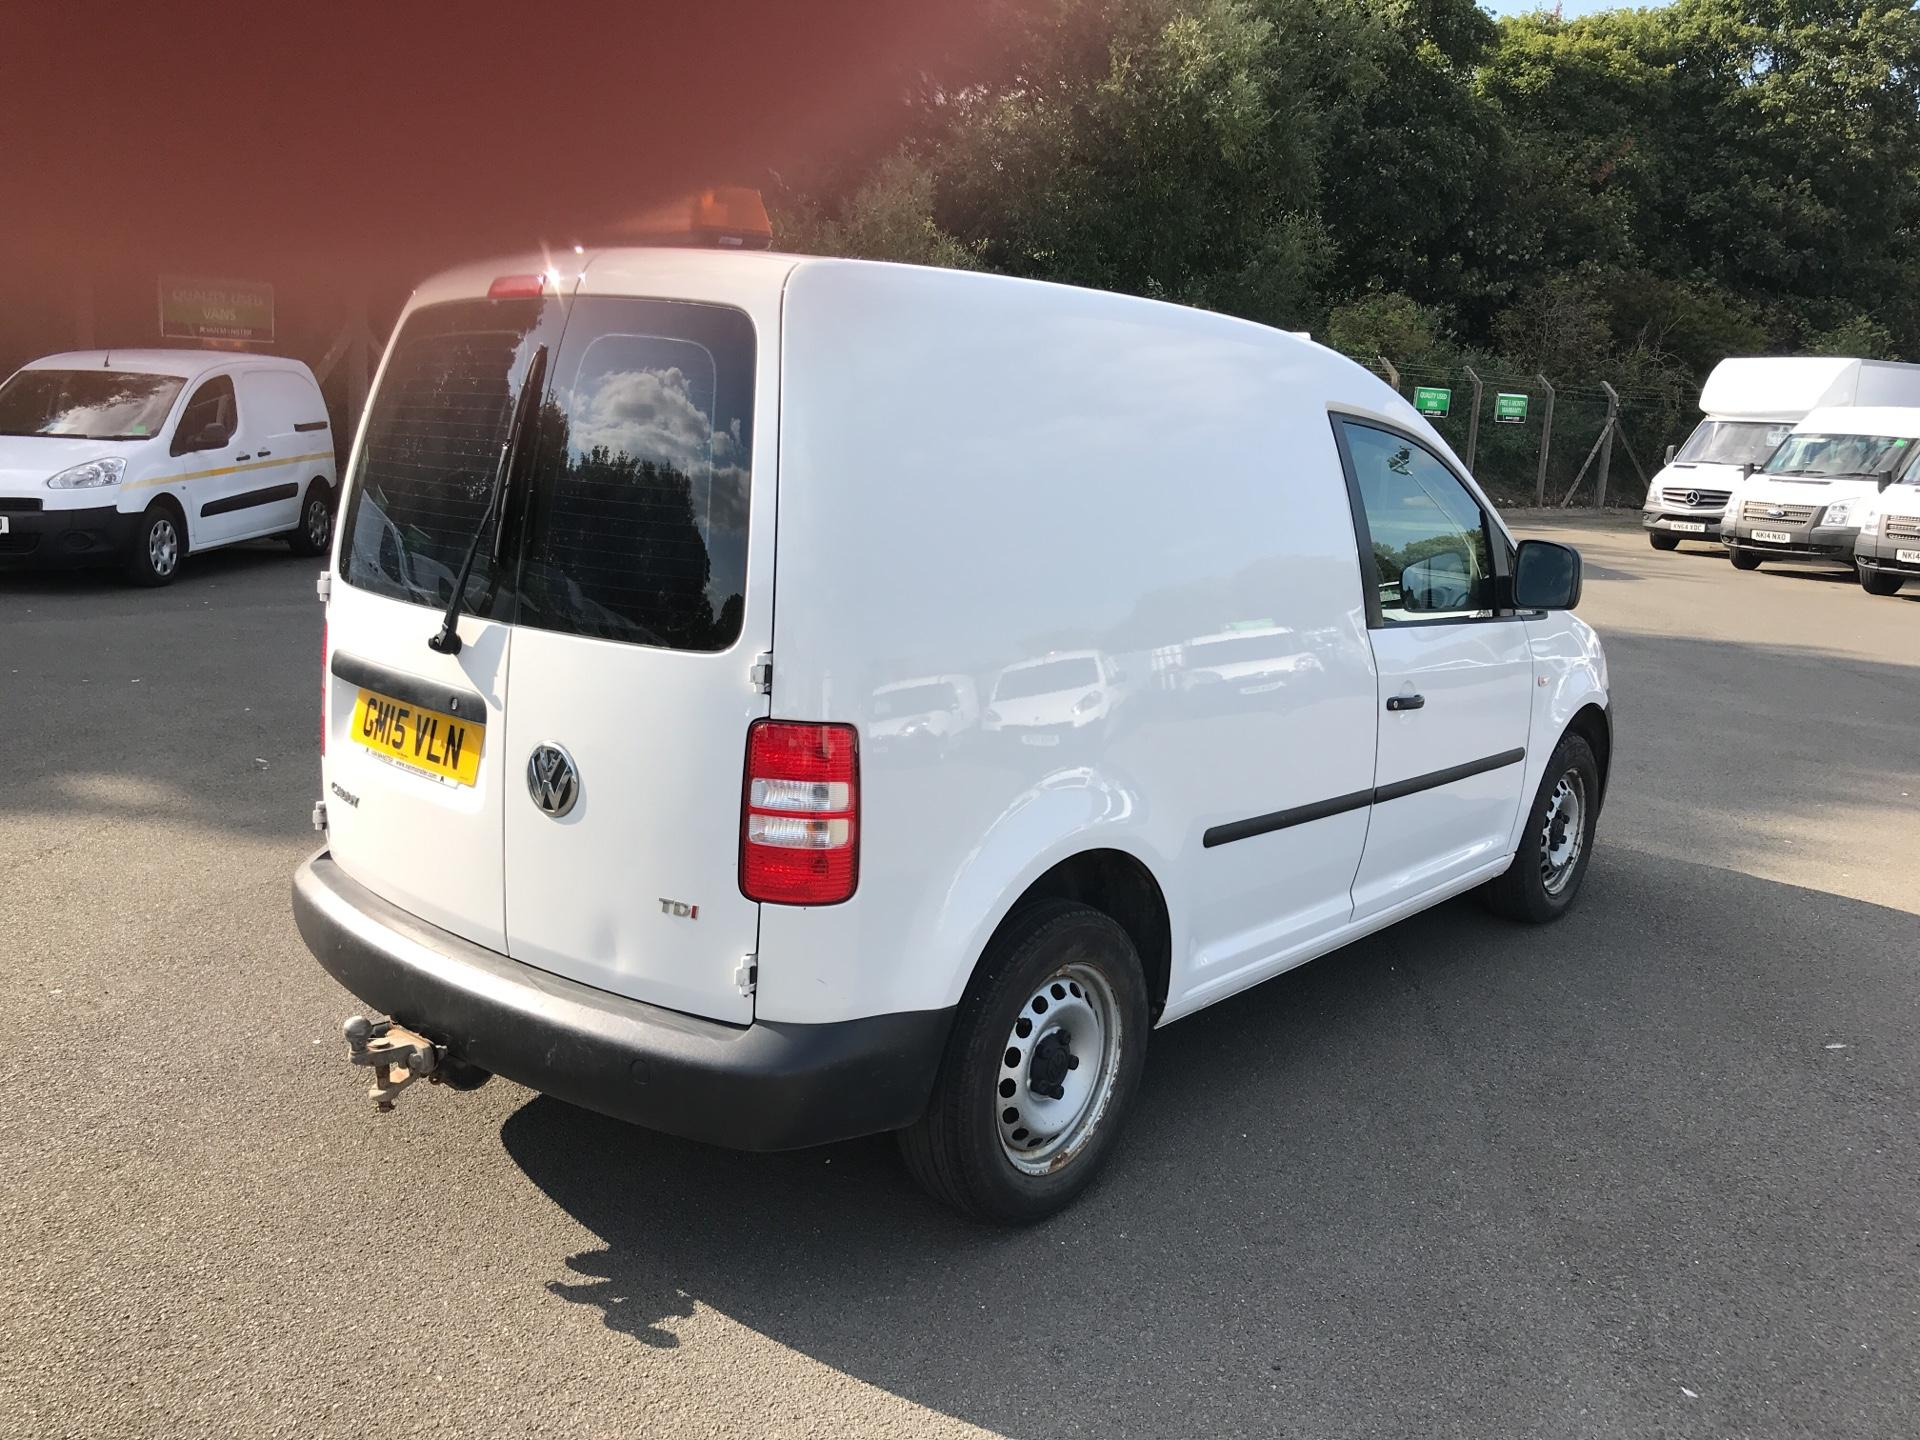 2015 Volkswagen Caddy  1.6 102PS STARTLINE EURO 5  *VALUE RANGE VEHICLE - CONDITION REFLECTED IN PRICE*  (GM15VLN) Image 3